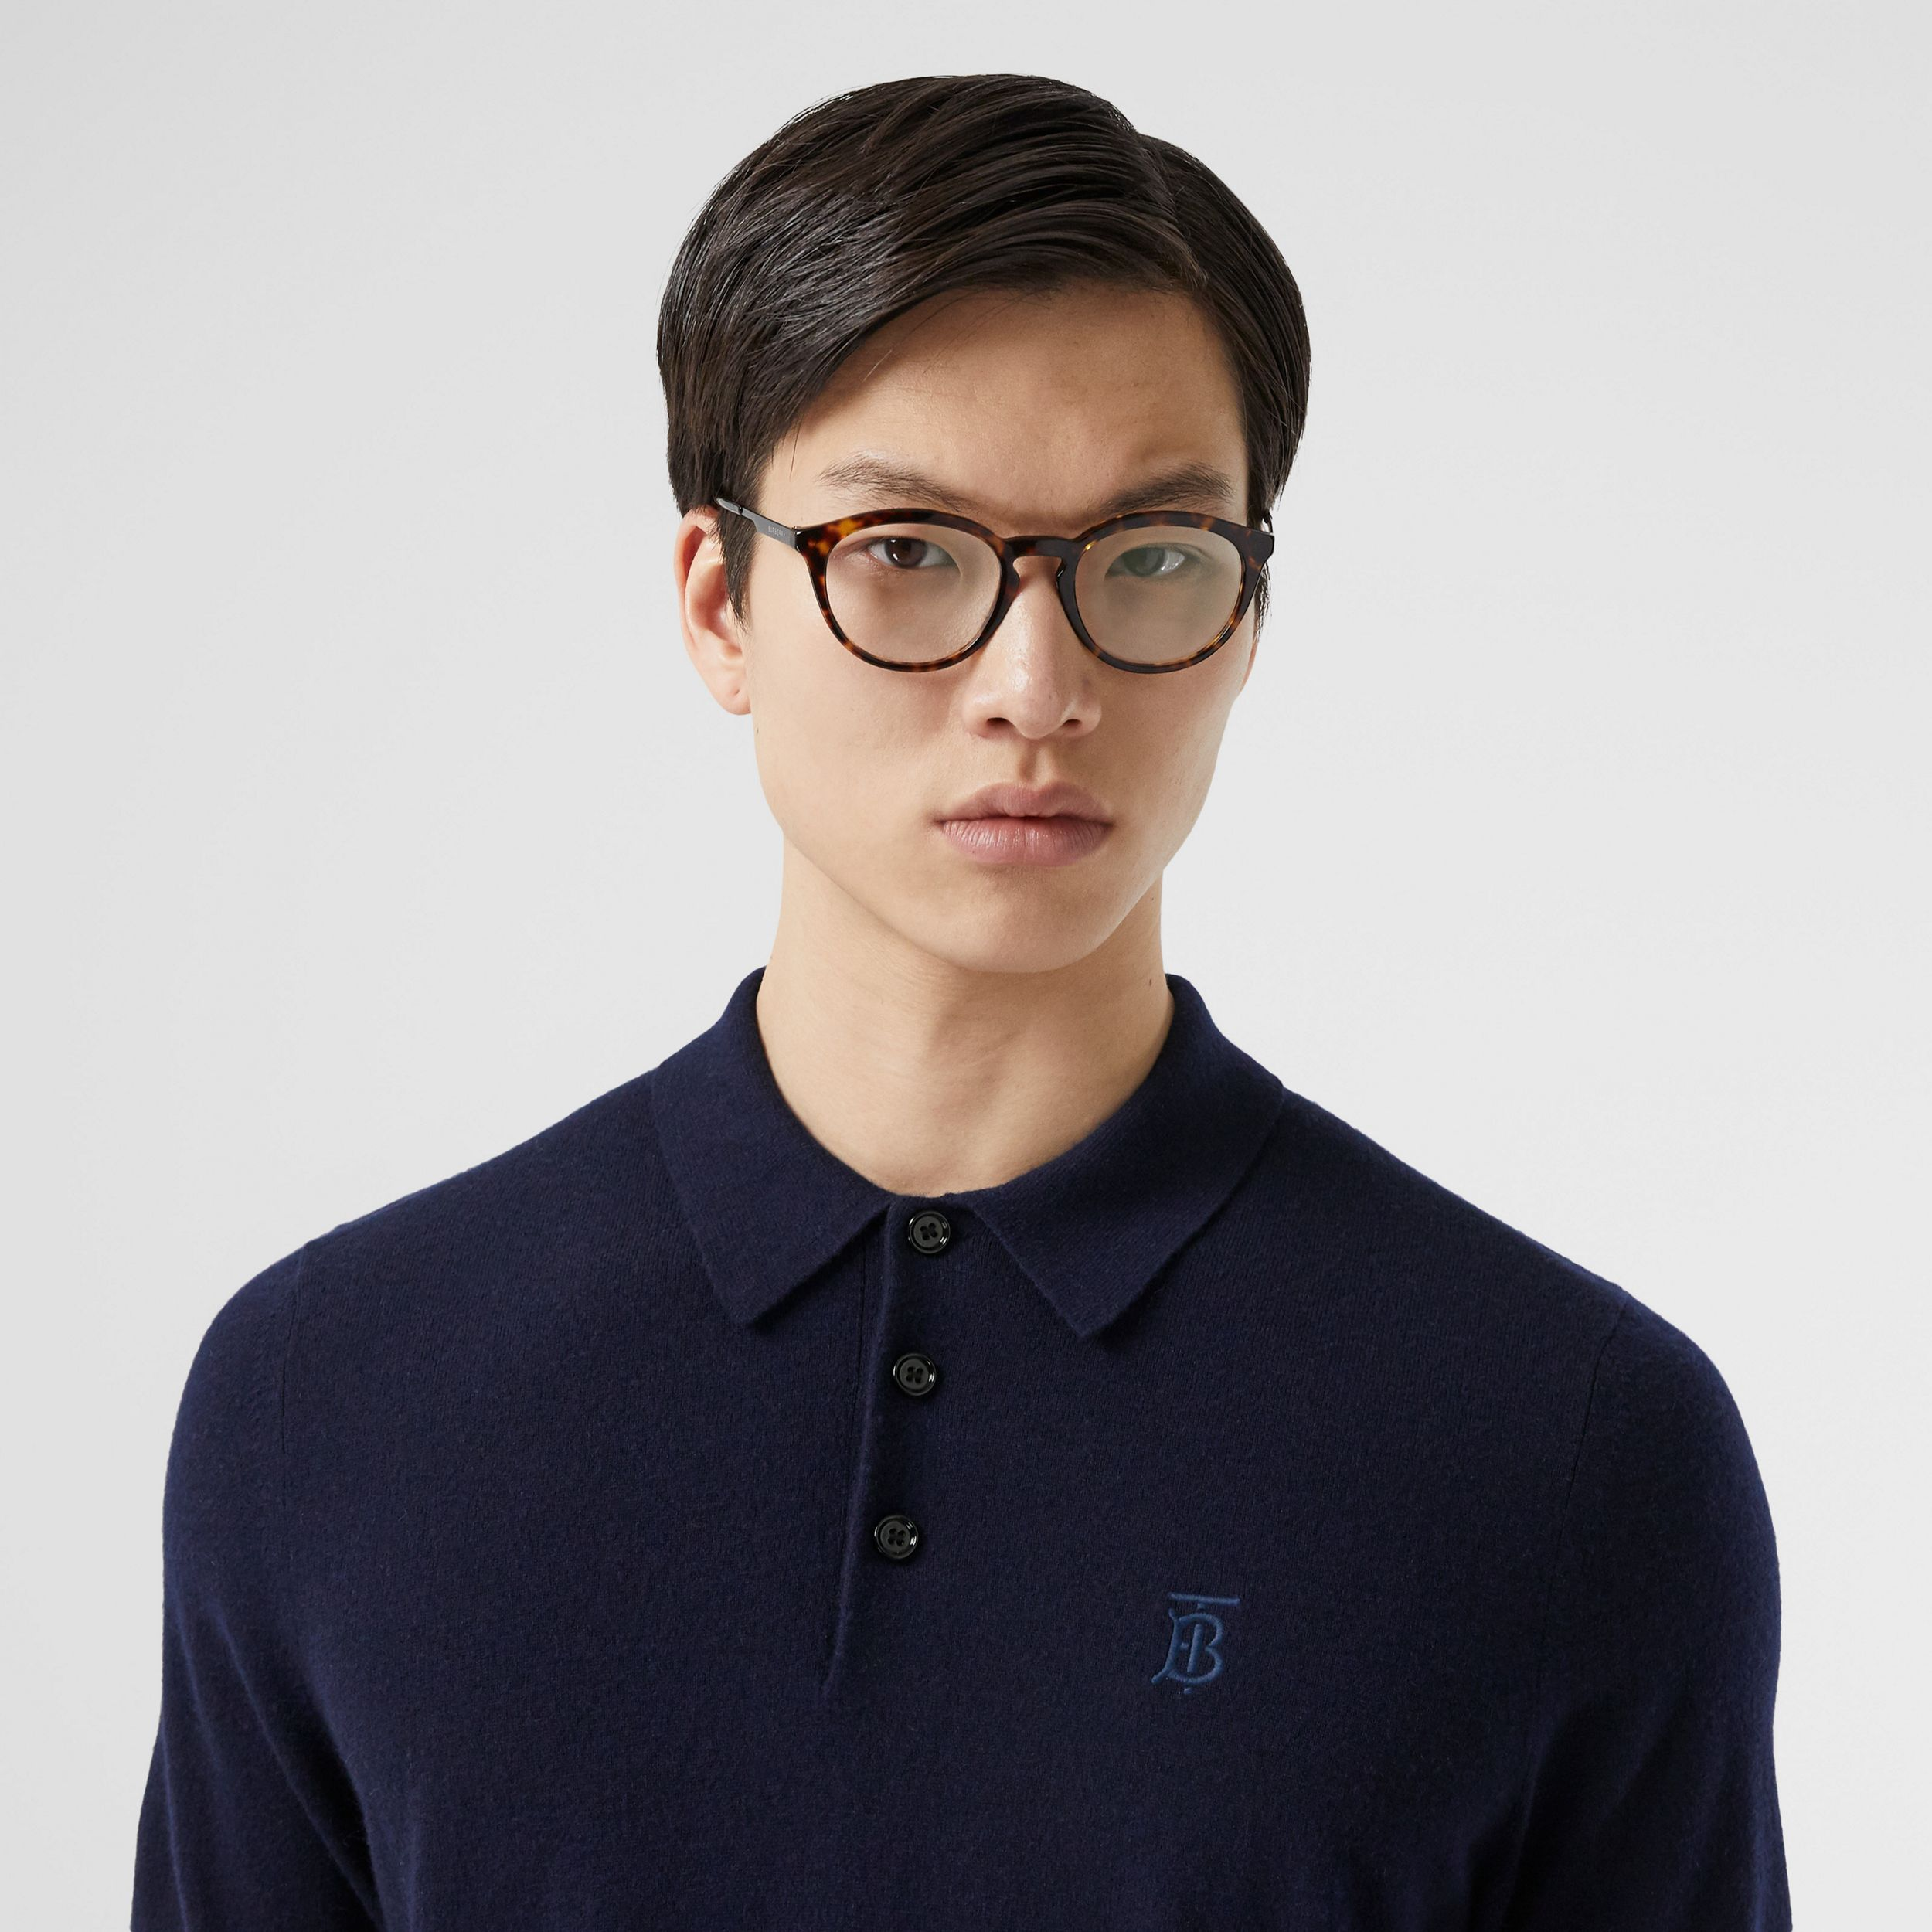 Monogram Motif Cashmere Polo Shirt in Navy - Men | Burberry - 2